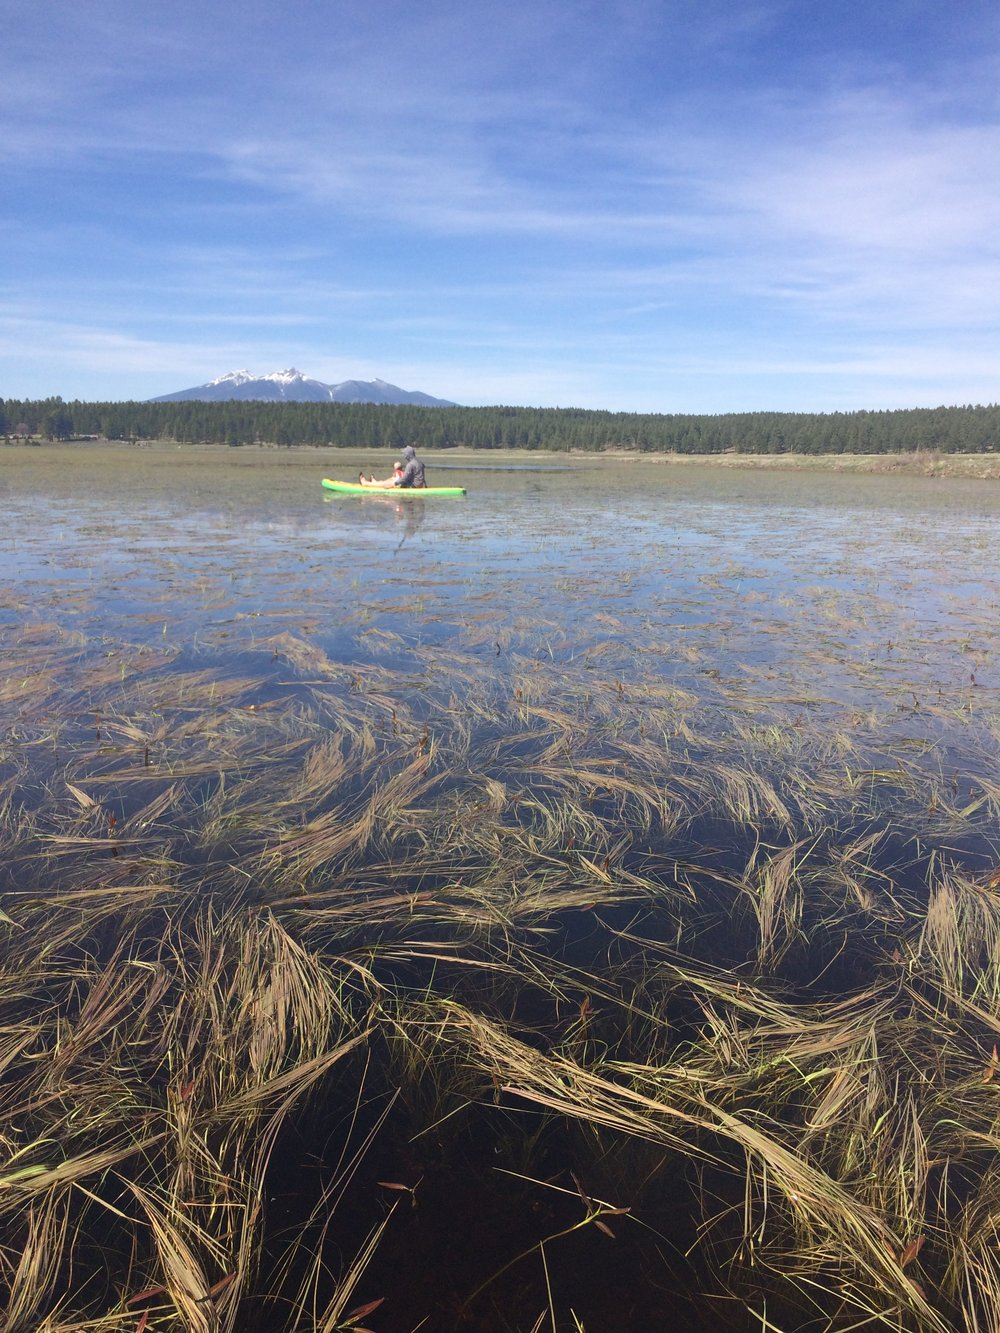 Rogers Lake periodically fills up with enough water to take out a kayak or canoe.